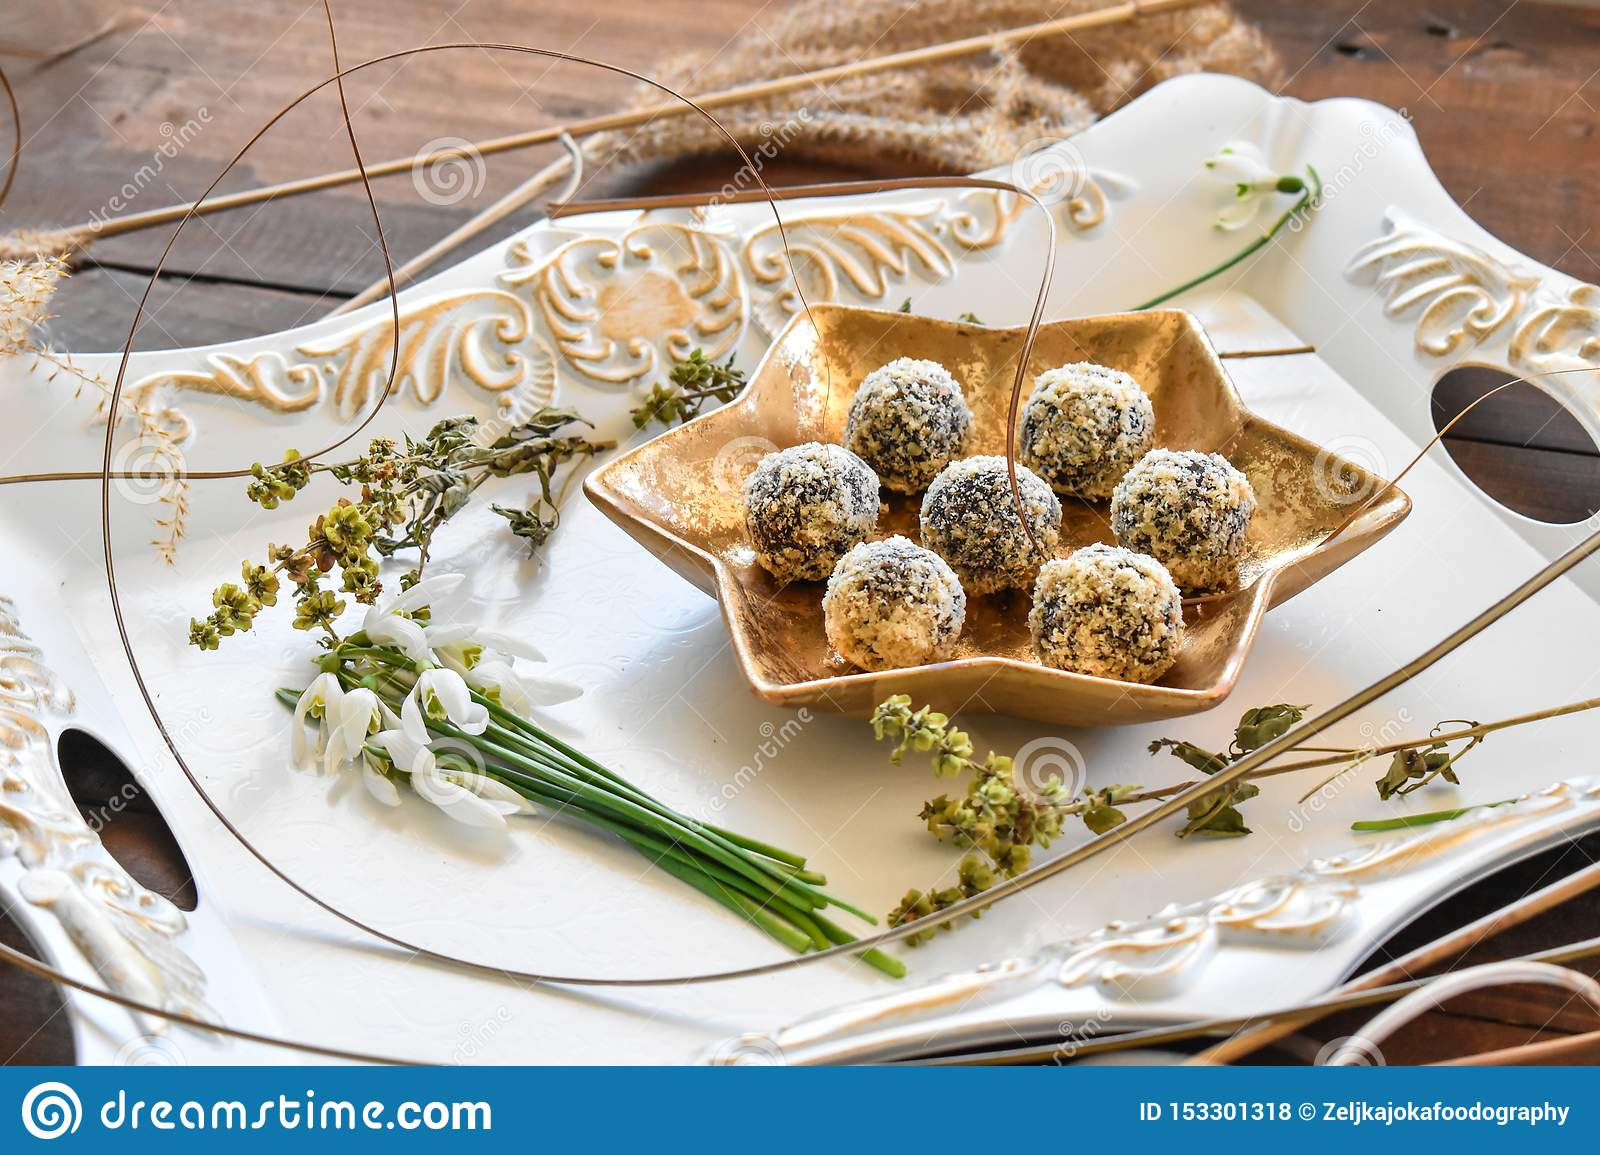 Golden plate with datepalm and walnuts chocolate balls